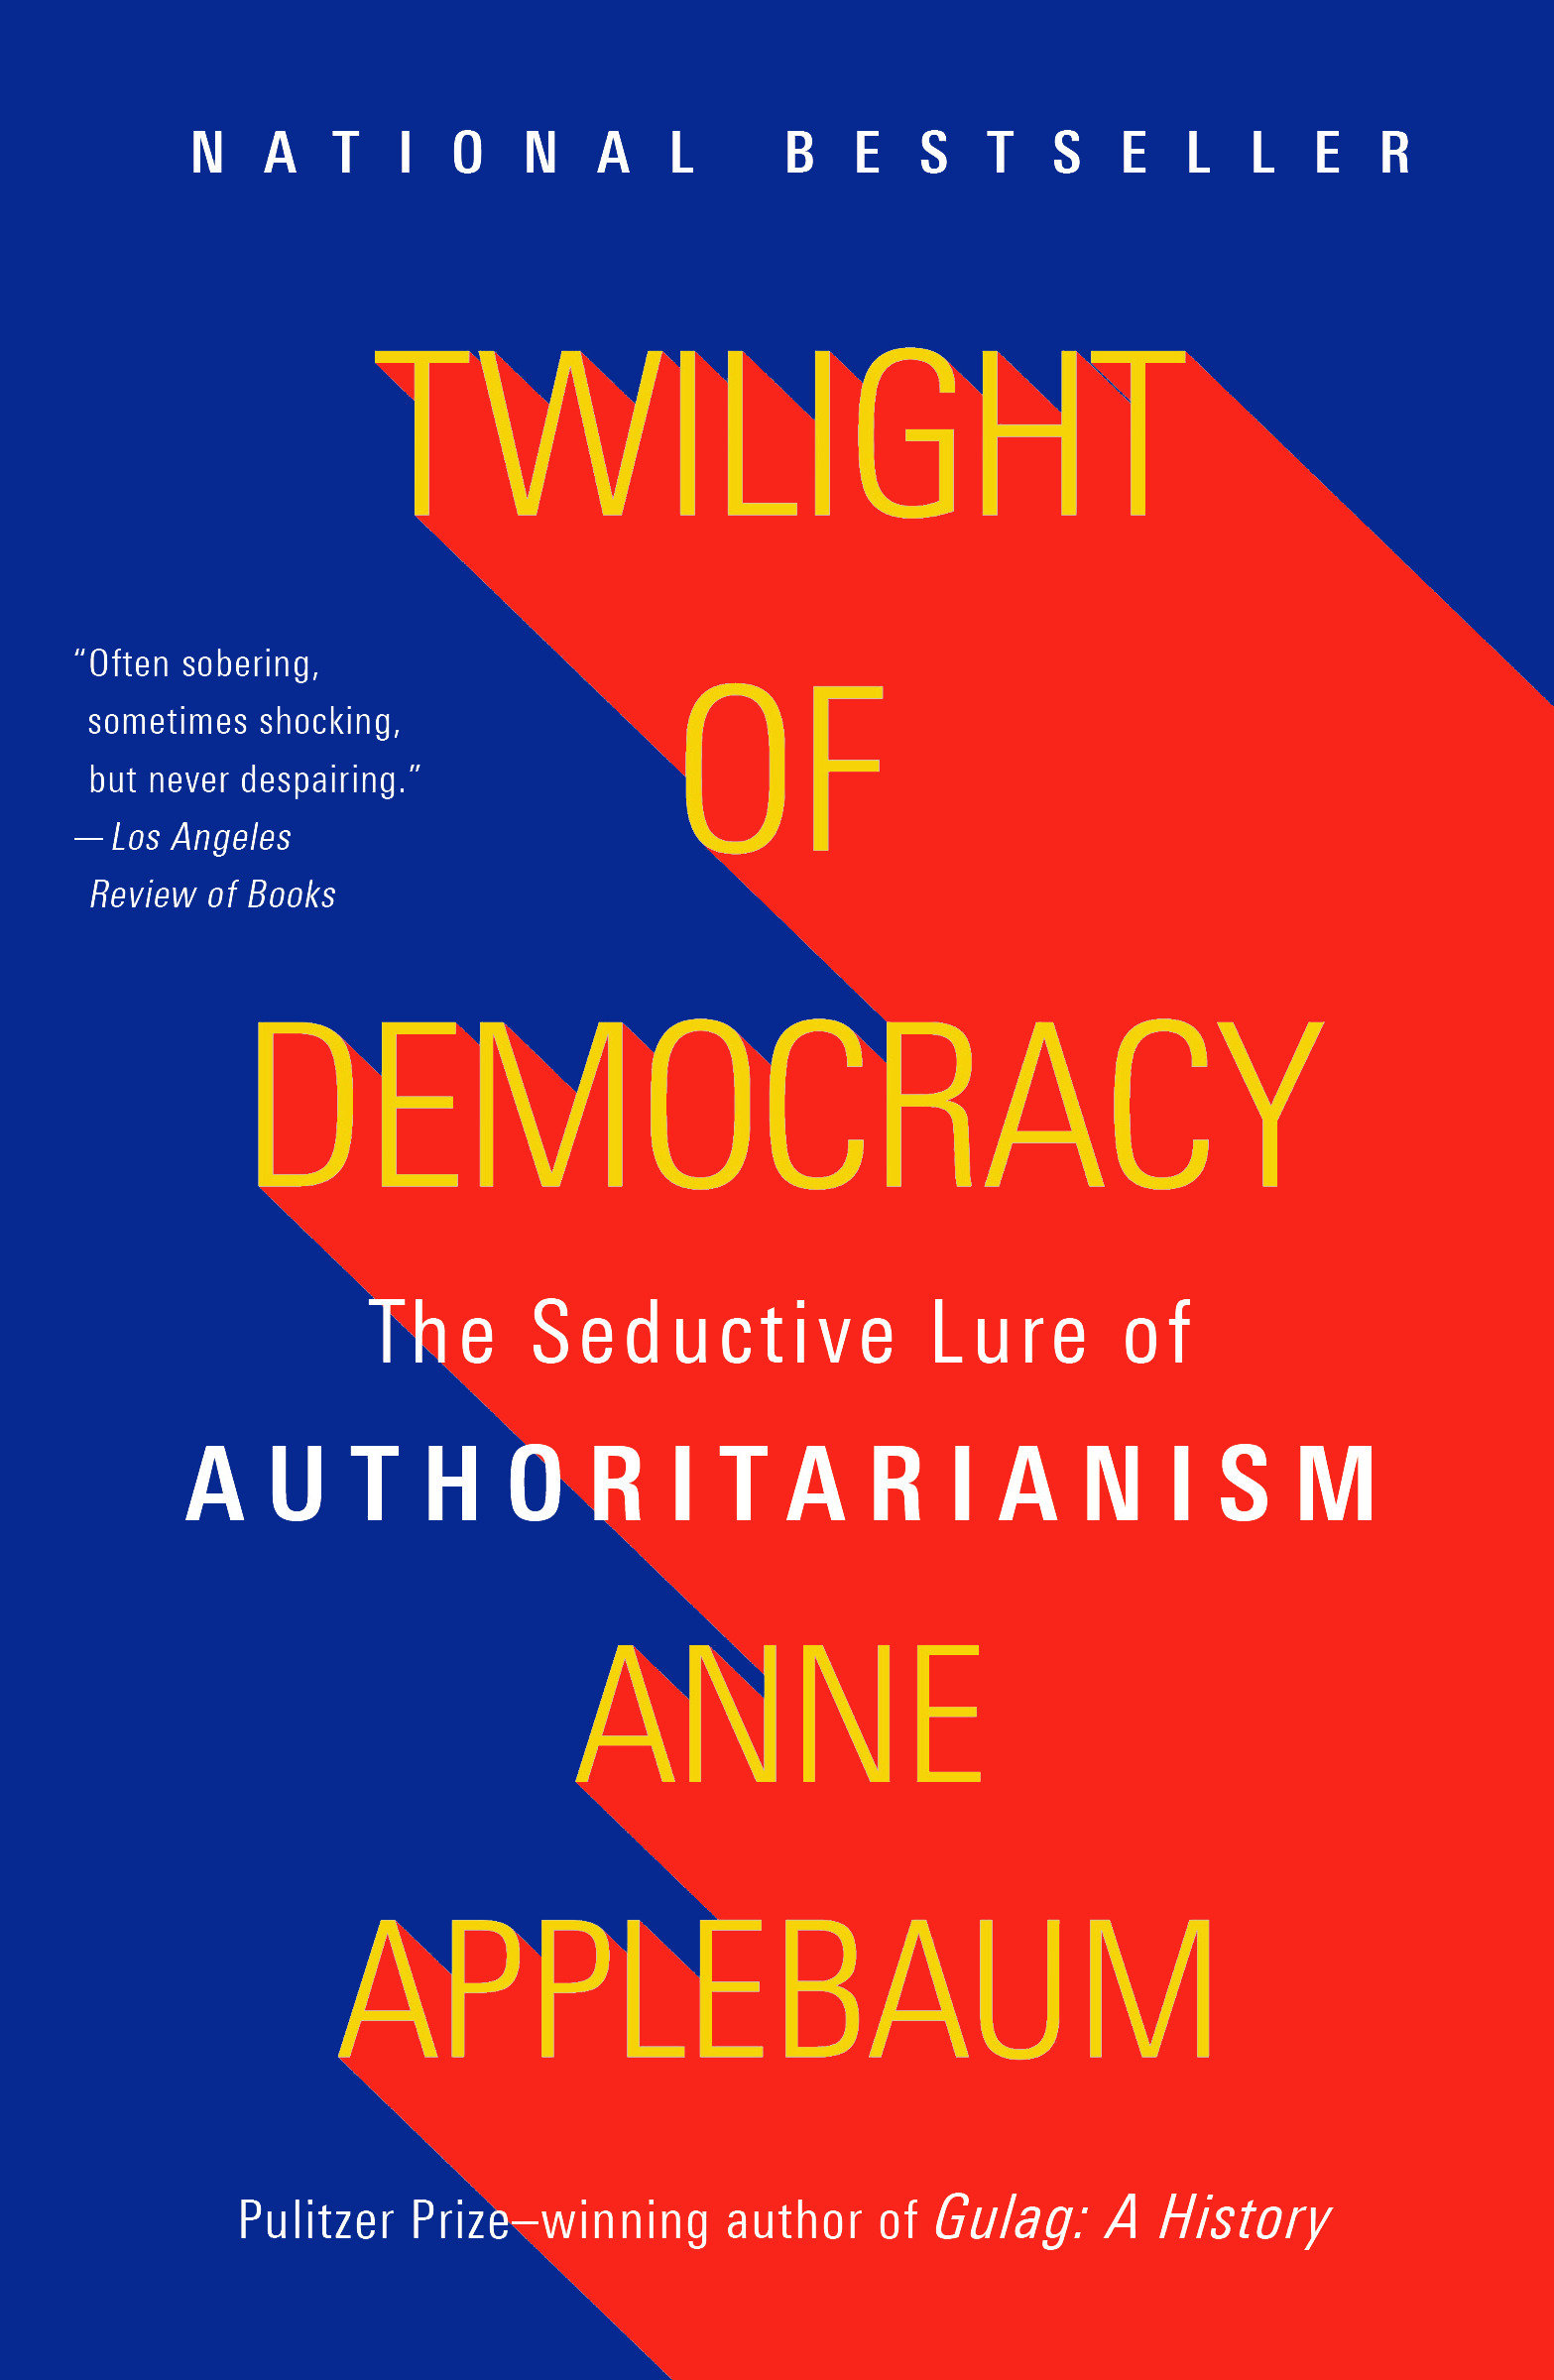 Twilight of democracy the seductive lure of authoritarianism